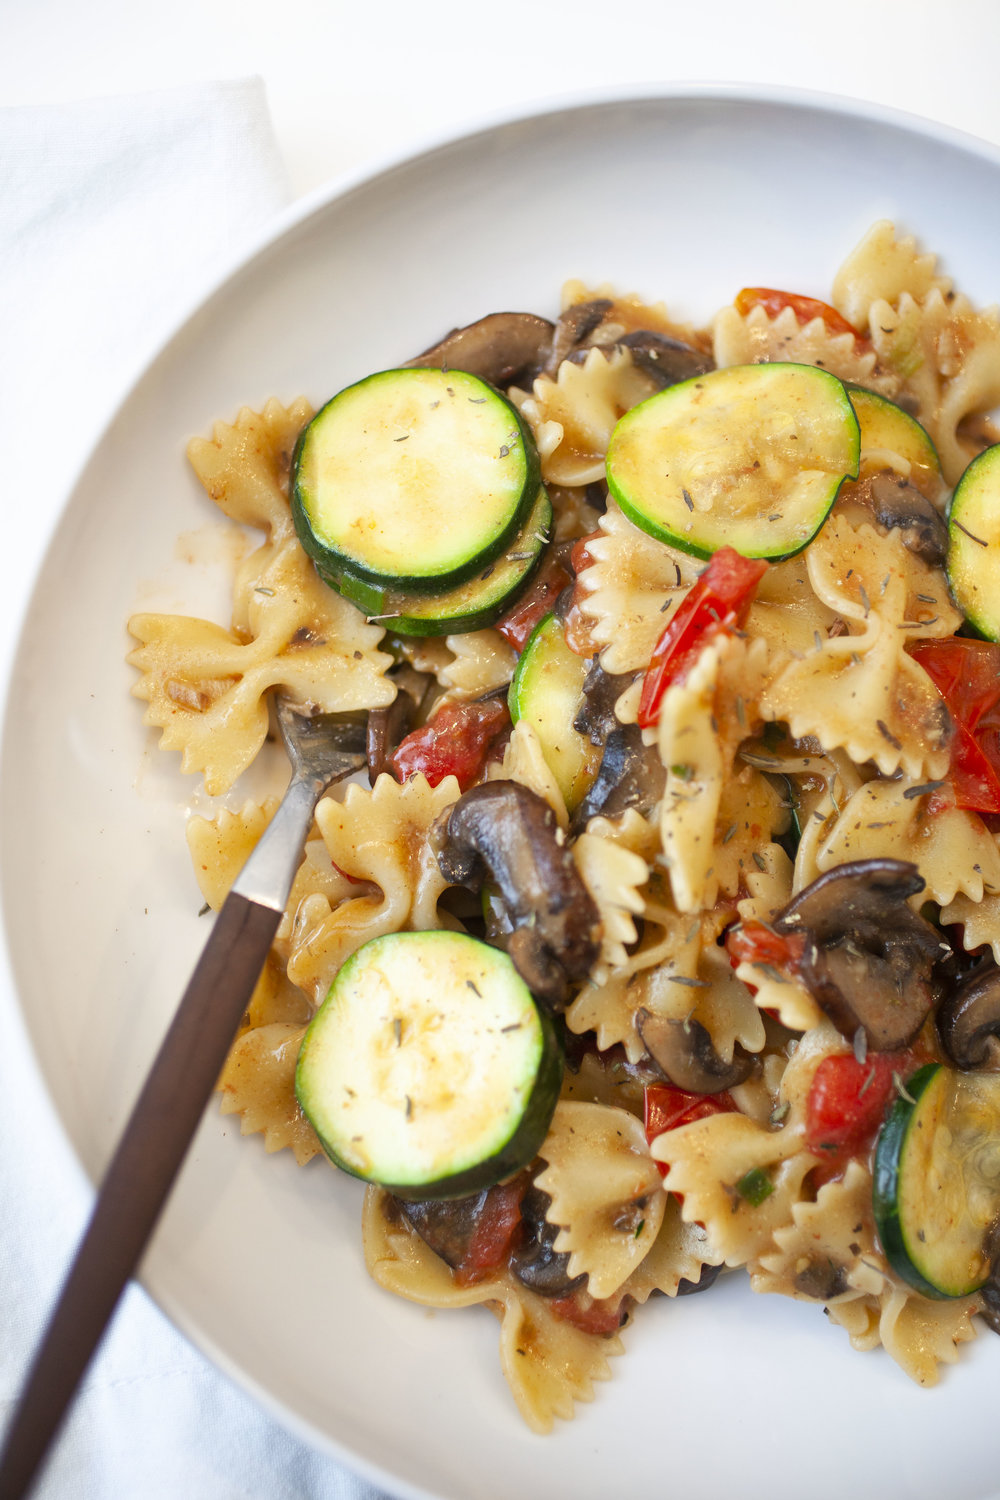 Produce On Parade - Farfalle with Zucchini, Mushrooms, and Cherry Tomatoes - I love quick and easy dinners and this veggie packed, healthy pasta dish is a wonderful weeknight meal. Another great thing: it's a terrific way to get a variety of nutritious vegetables into those picky eaters. My toddler actually picked out the zucchini to eat! I know your family will love this Farfalle with Zucchini, Mushrooms, and Cherry Tomatoes as much as we do.